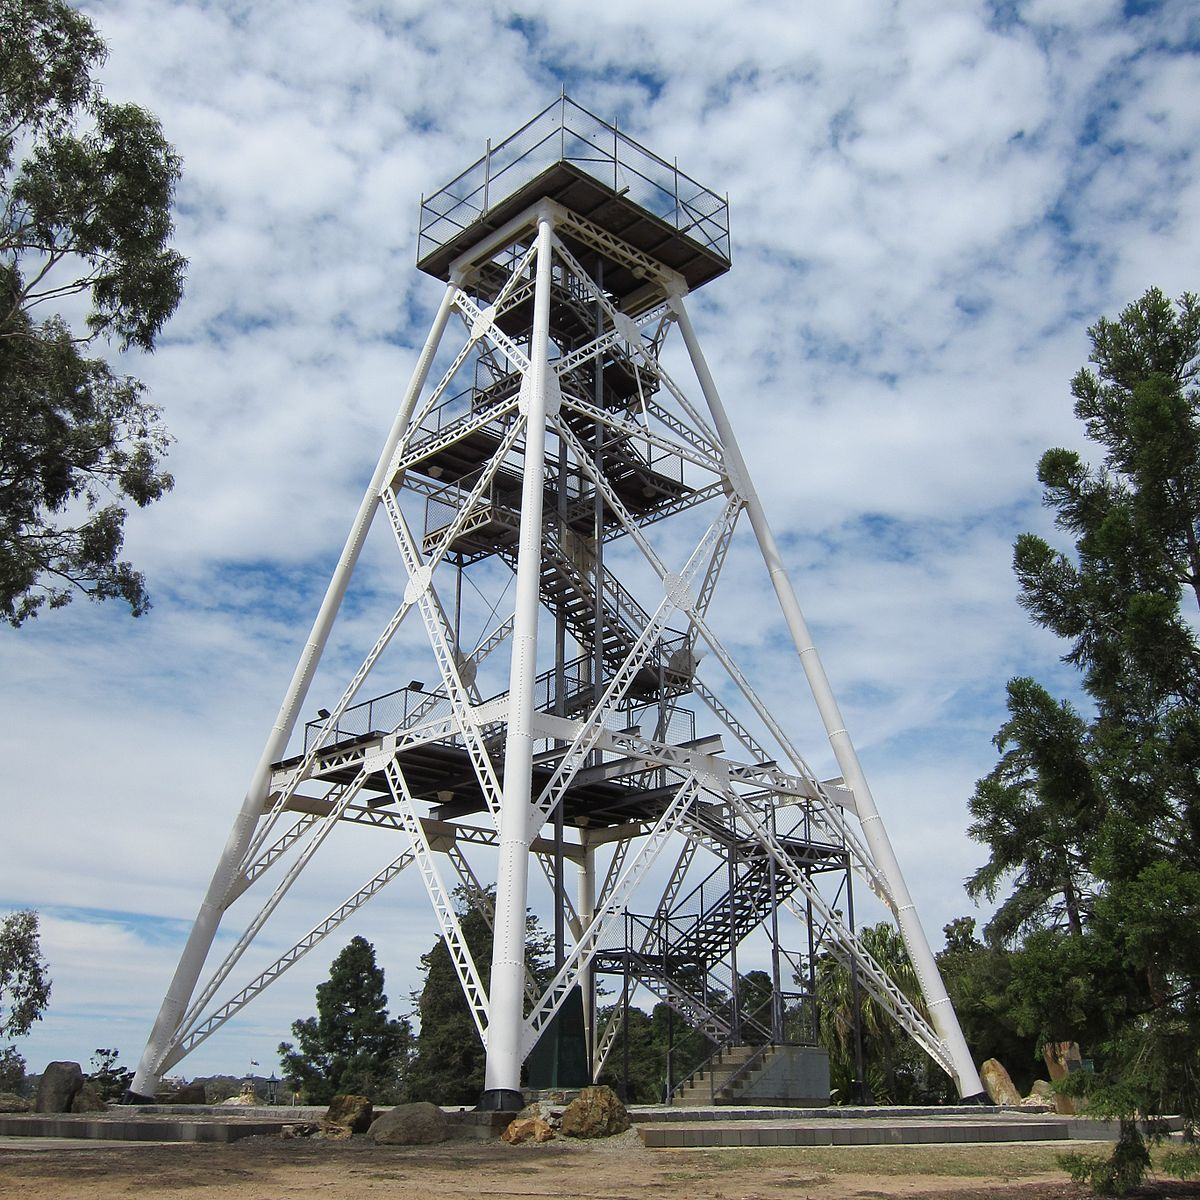 View of Poppet Head Lookout, Rosalind Park, Bendigo, Victoria, 2 March 2015.jpg